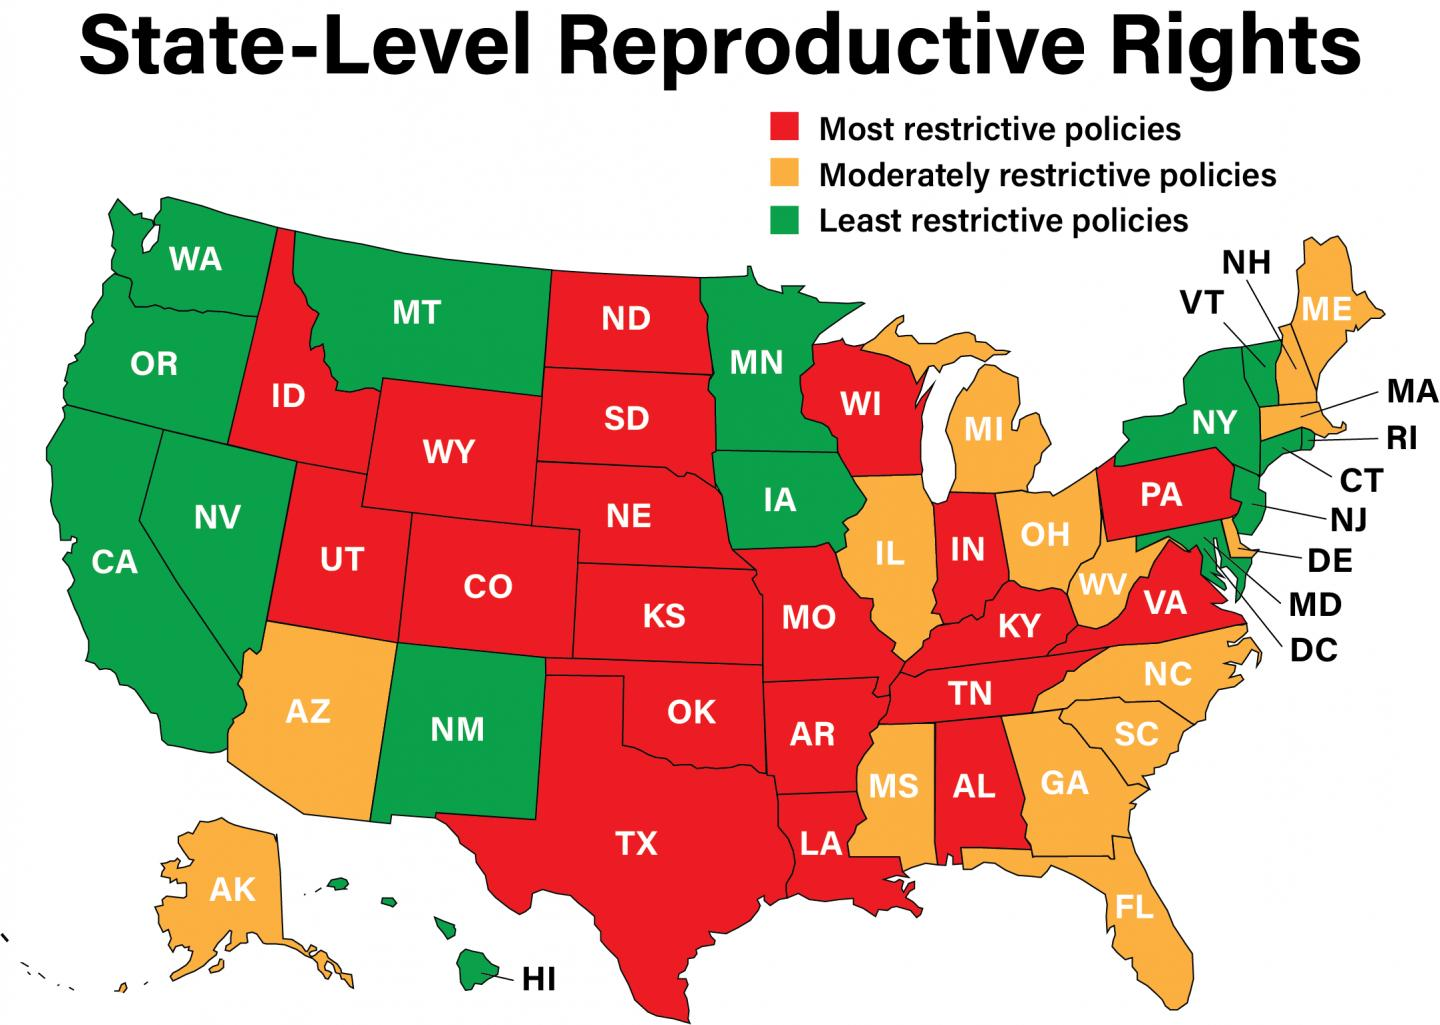 State-Level Reproductive Rights